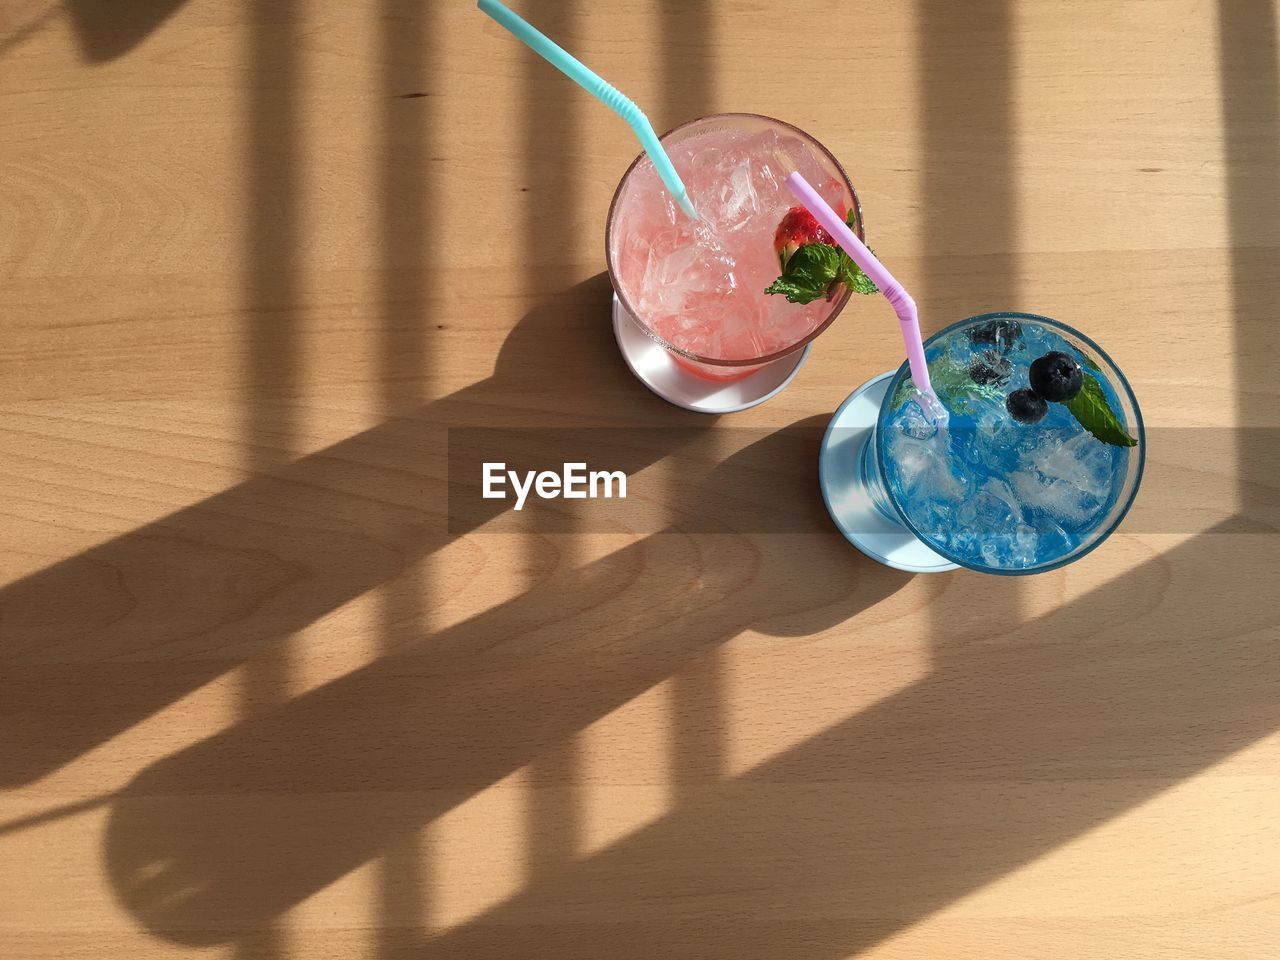 shadow, table, wood - material, sunlight, glass, food and drink, food, fruit, indoors, high angle view, drinking glass, refreshment, drinking straw, drink, no people, nature, straw, cocktail, household equipment, day, wood, herb, mint leaf - culinary, garnish